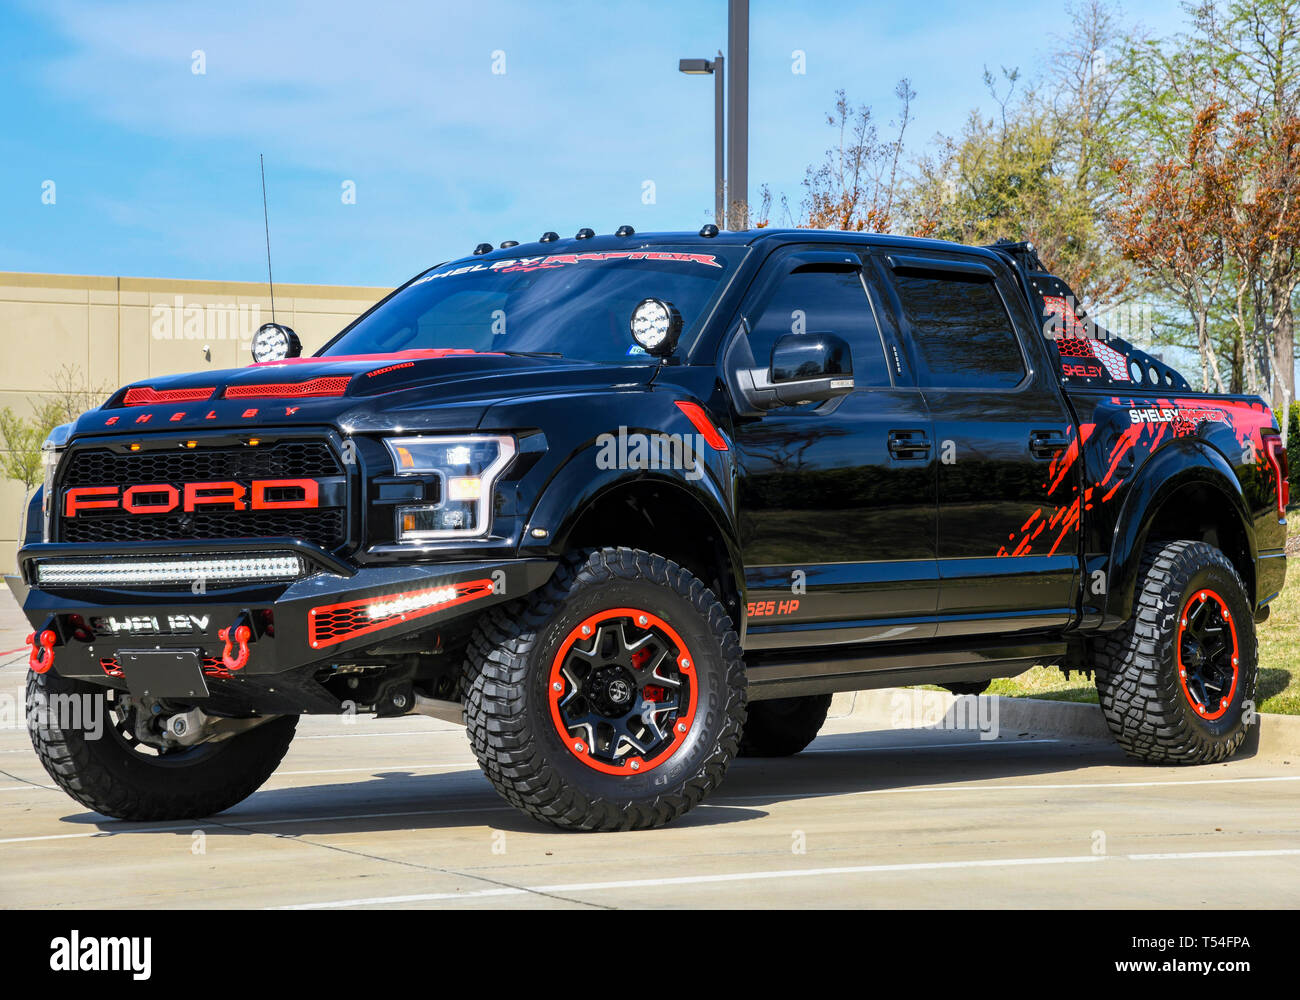 Ford F 150 Raptor High Resolution Stock Photography And Images Alamy